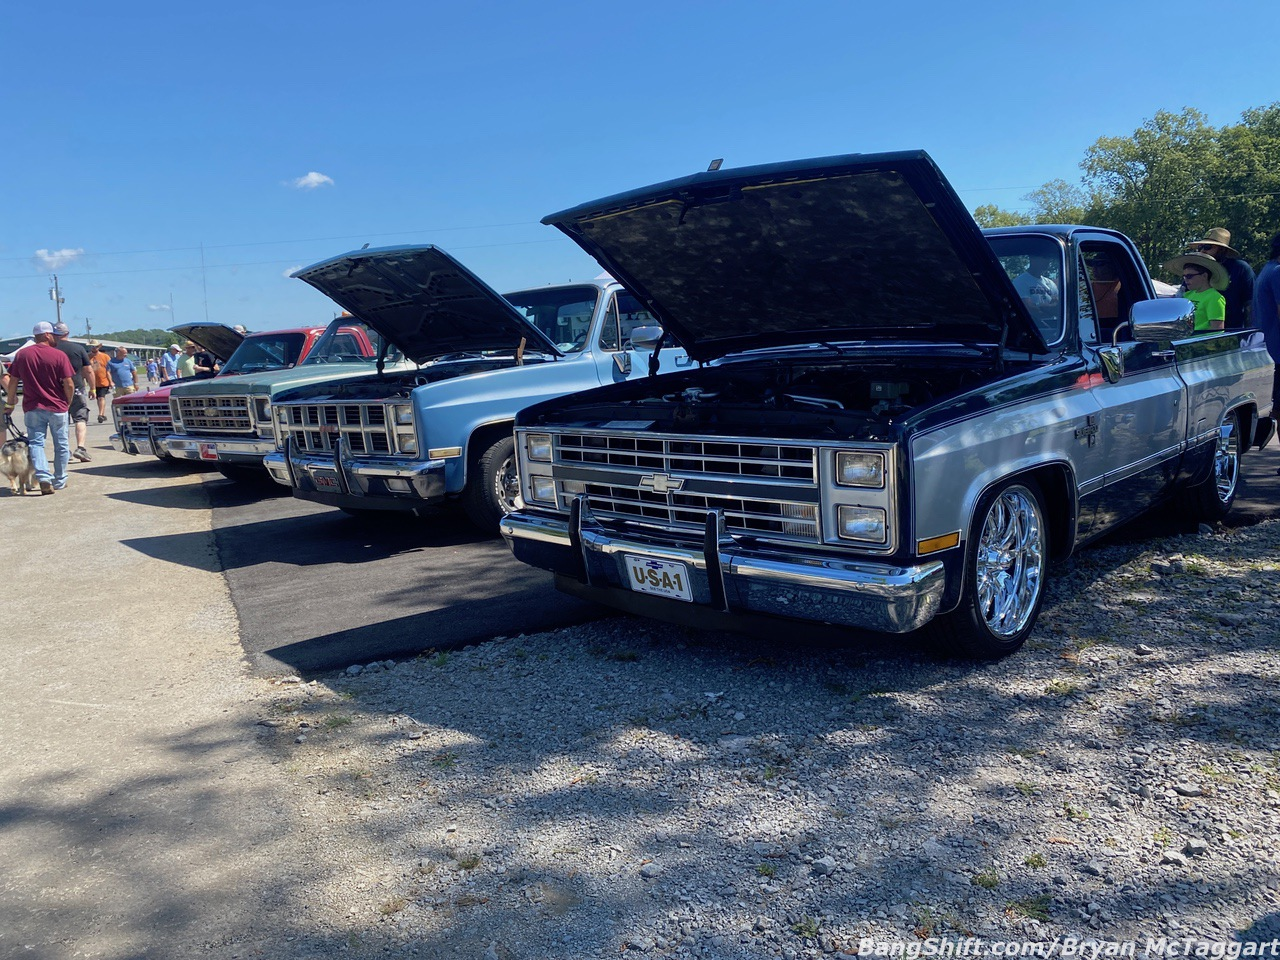 2020 Southeastern Chevy/GMC Truck Nationals: Square Bodies In The Sunshine